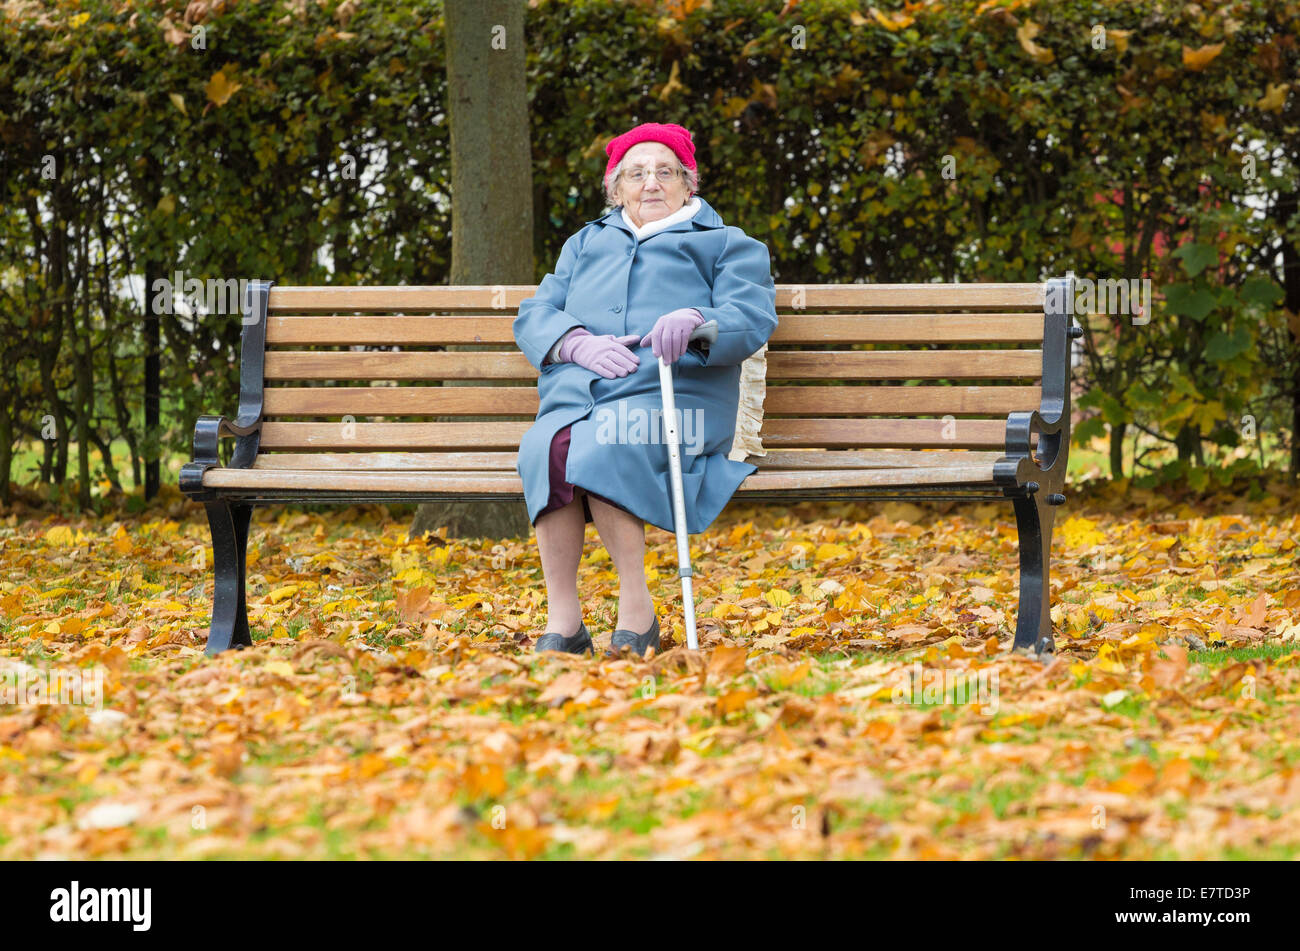 Image result for images of sitting on a park bench in autumn